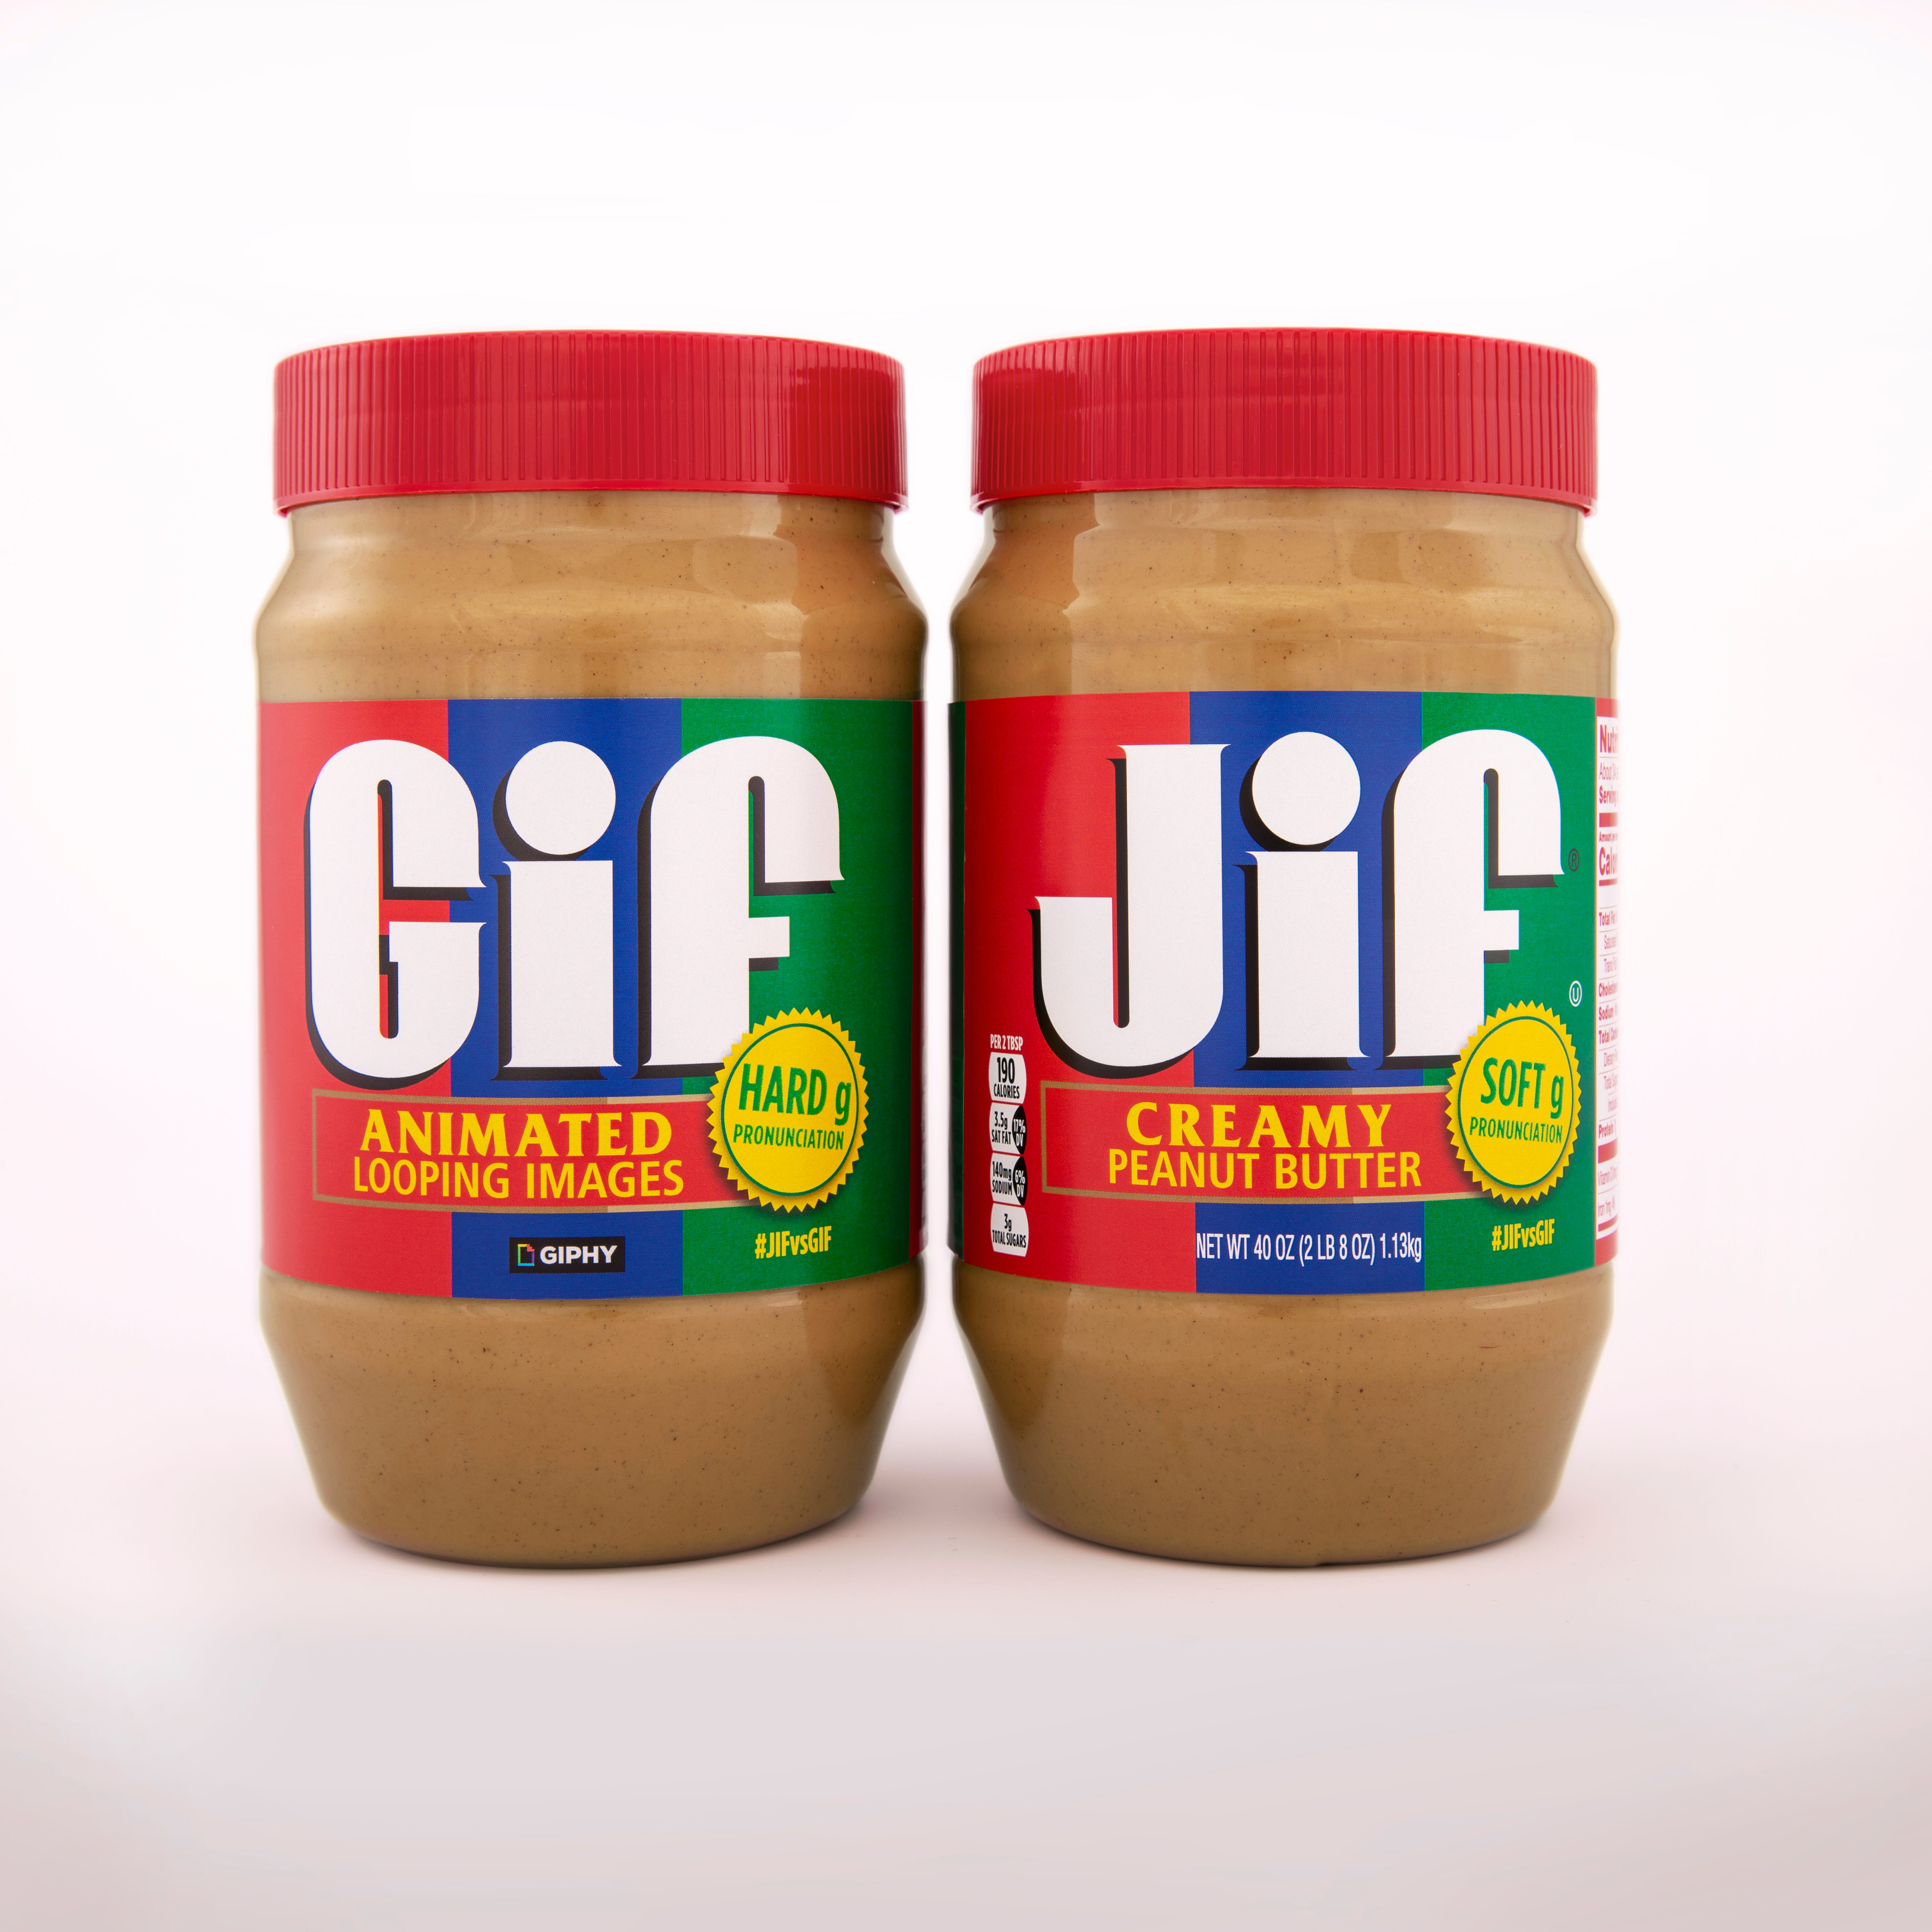 Gif or Jif: How do you pronounce it? The definitive answer (or maybe not)